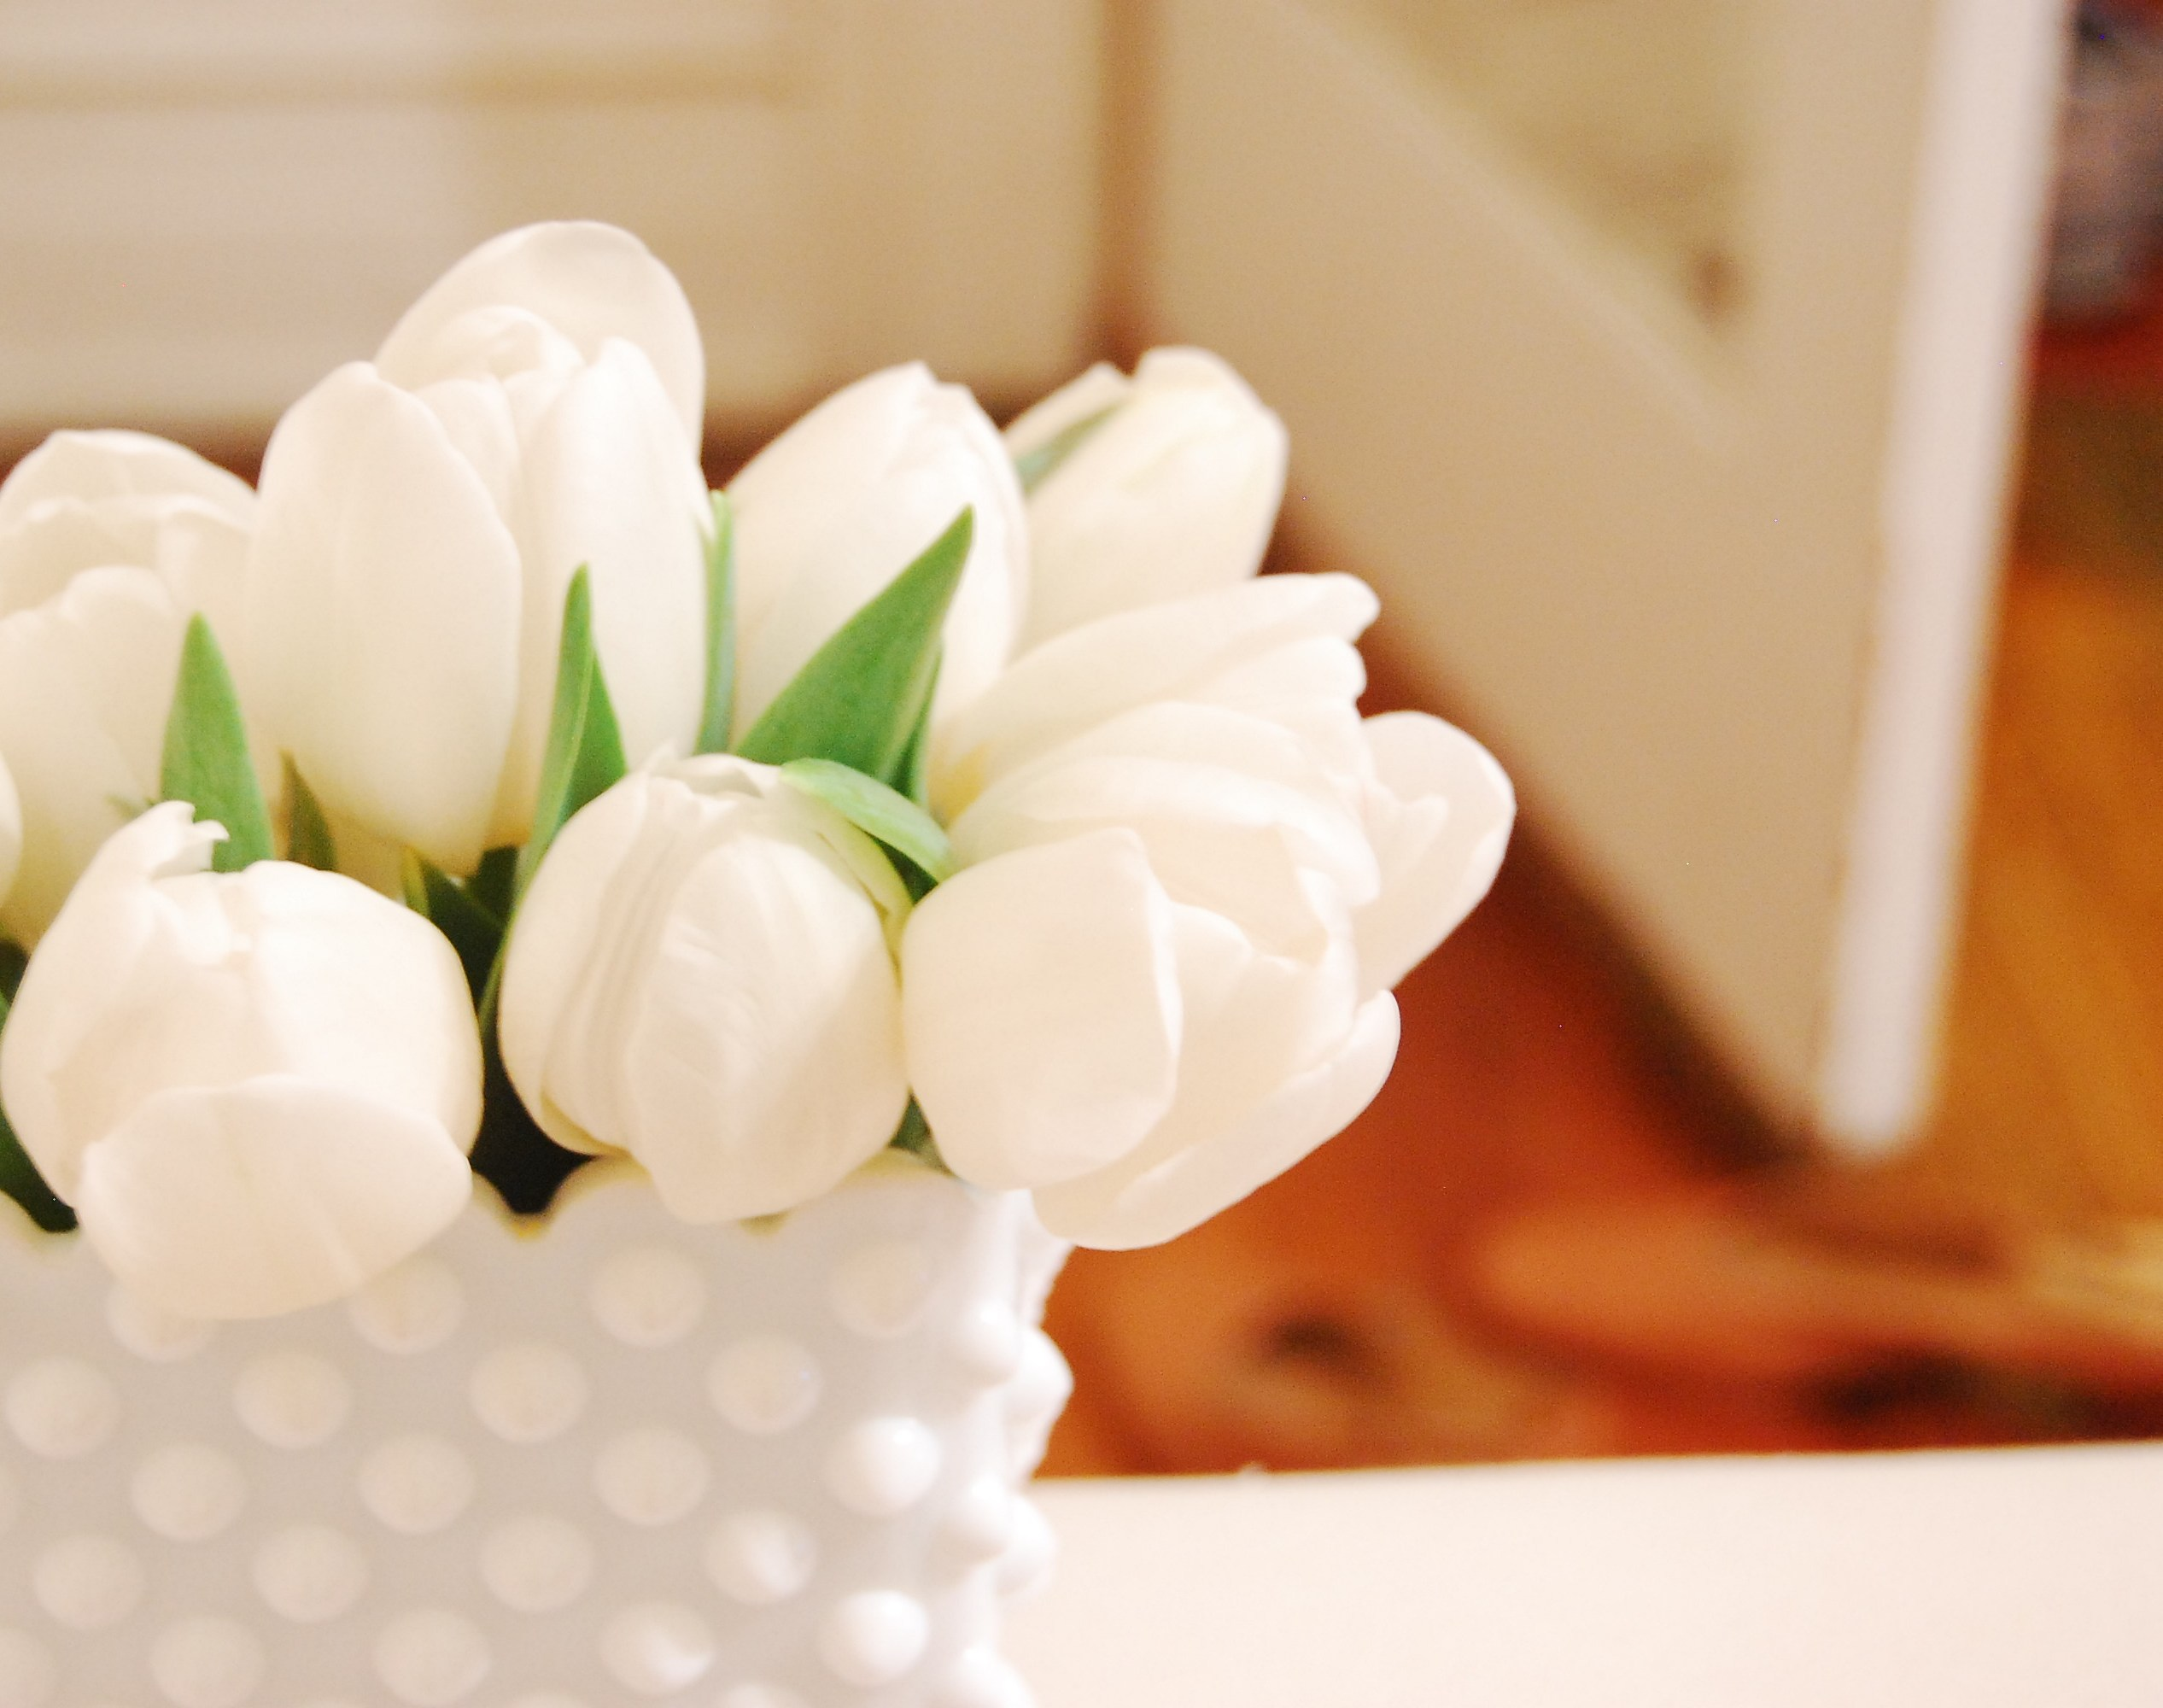 White tulips in a white vase